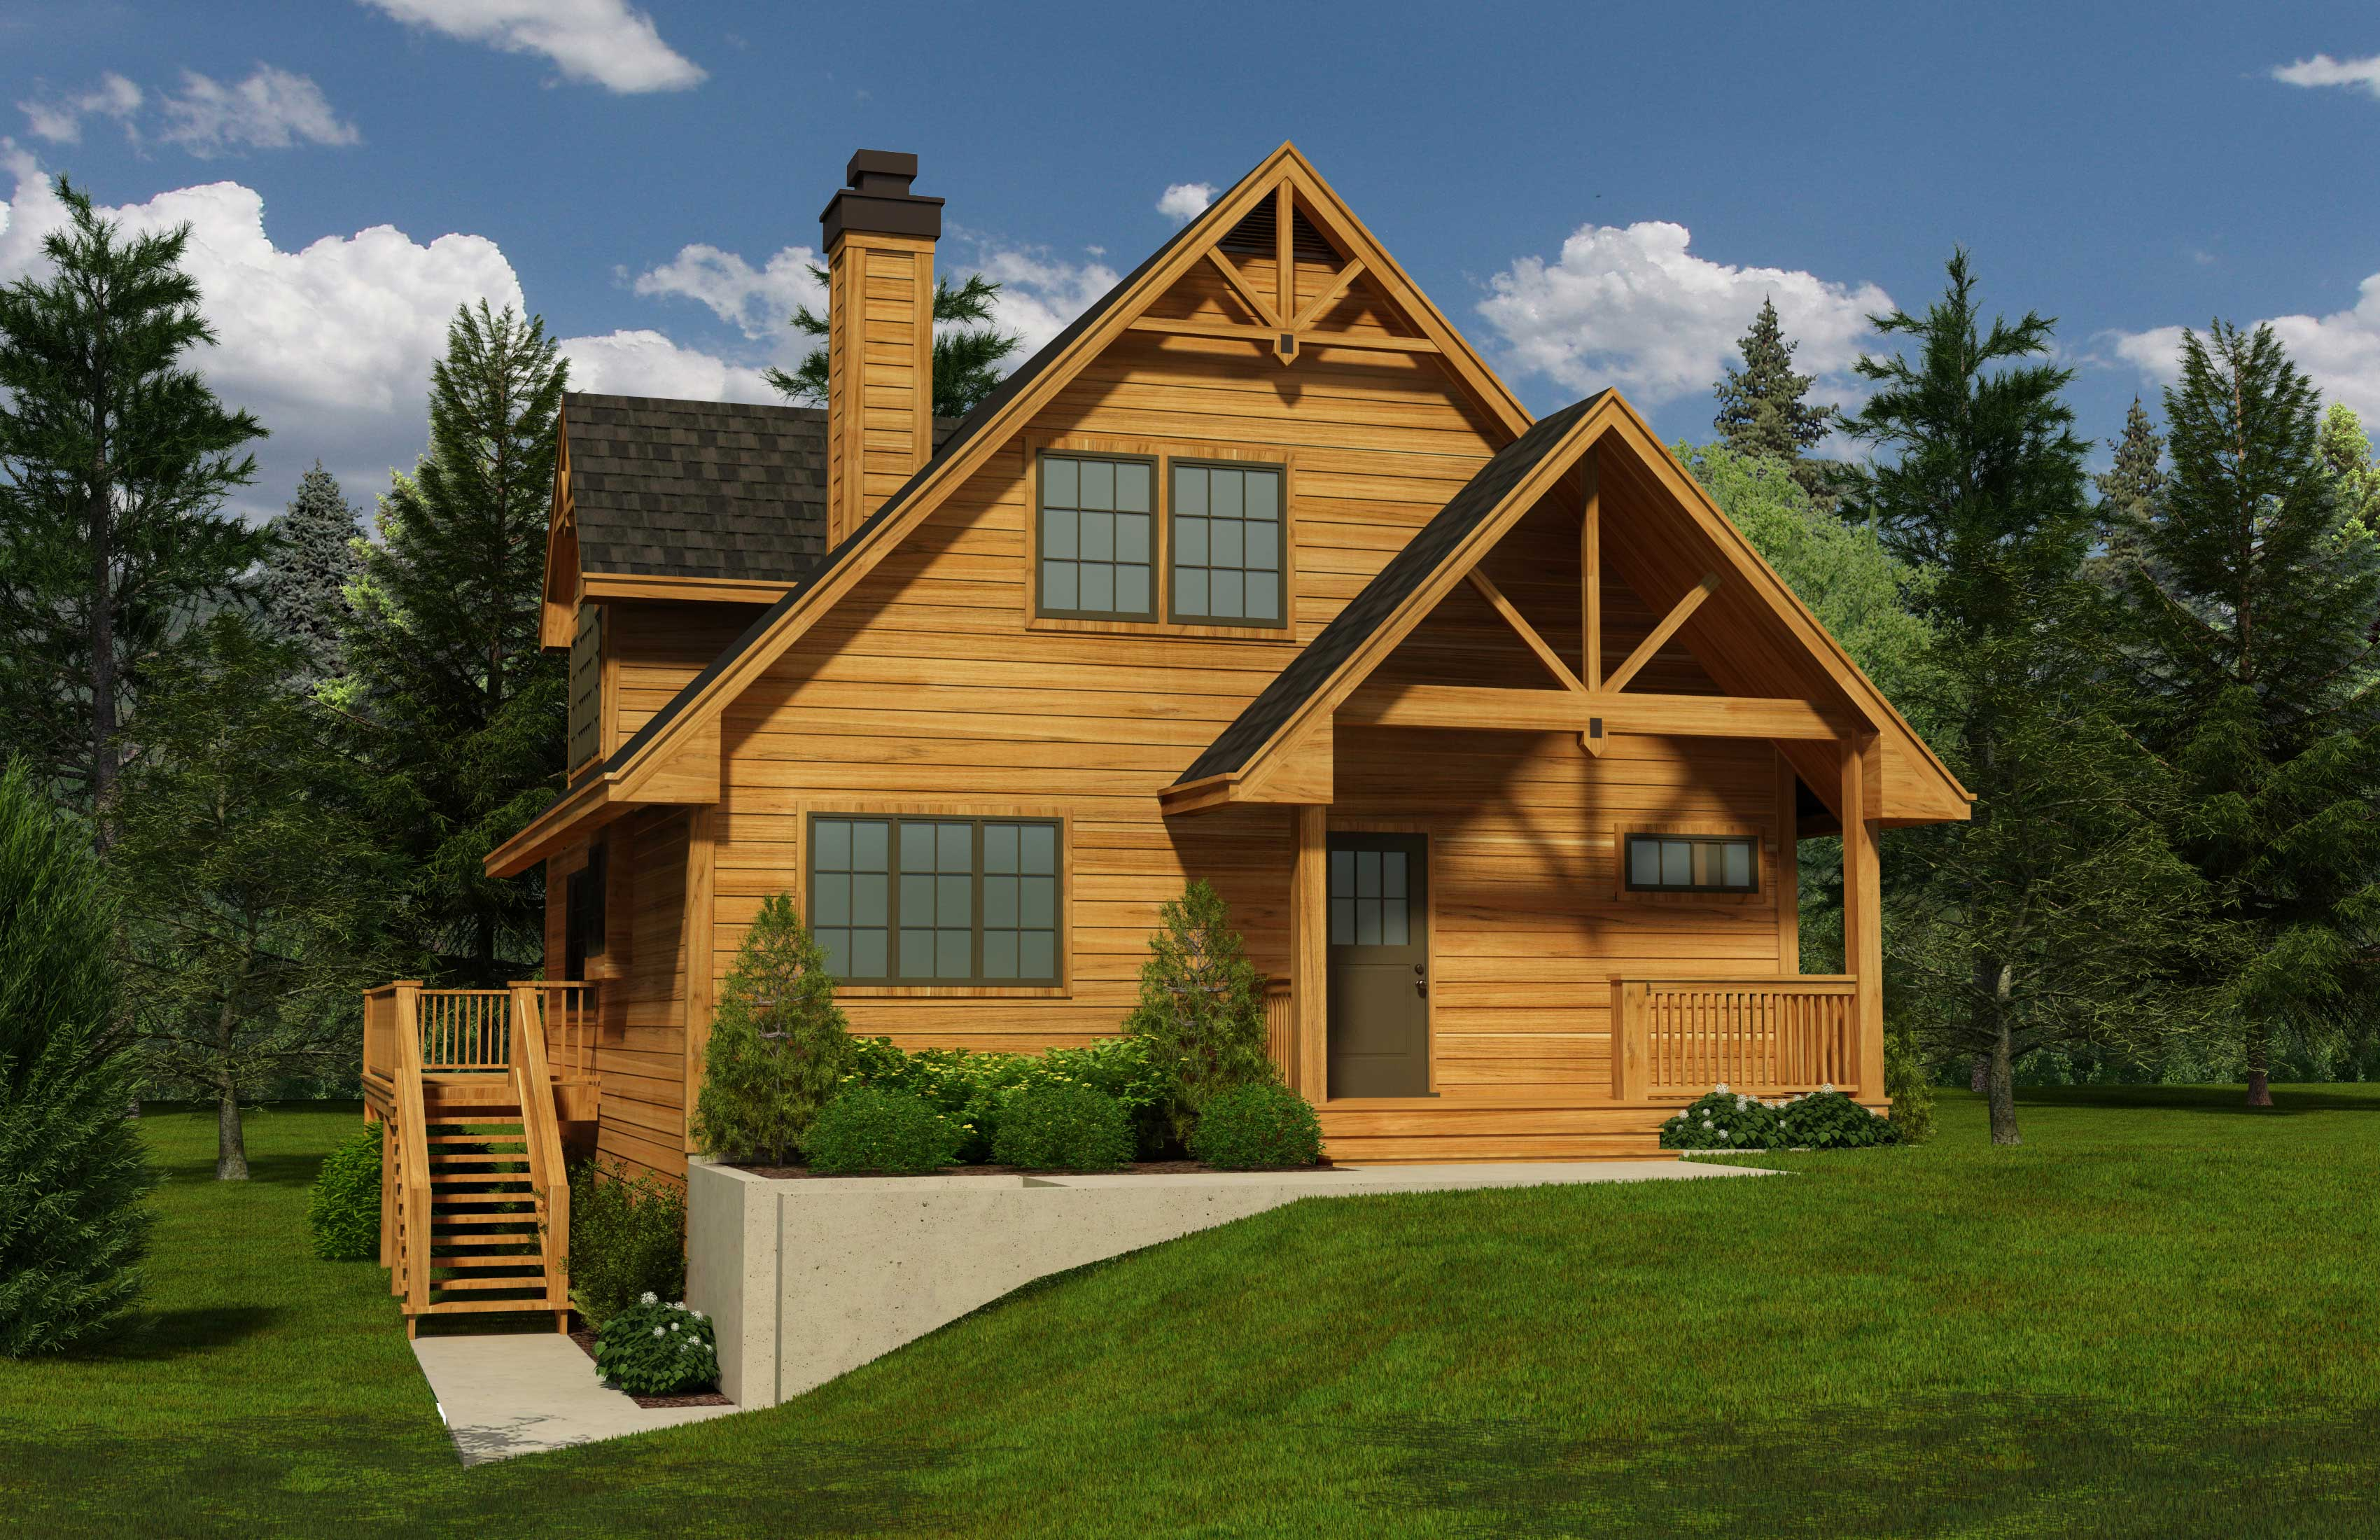 Log plans architectural designs 4 bedroom log home plans for Log home plans